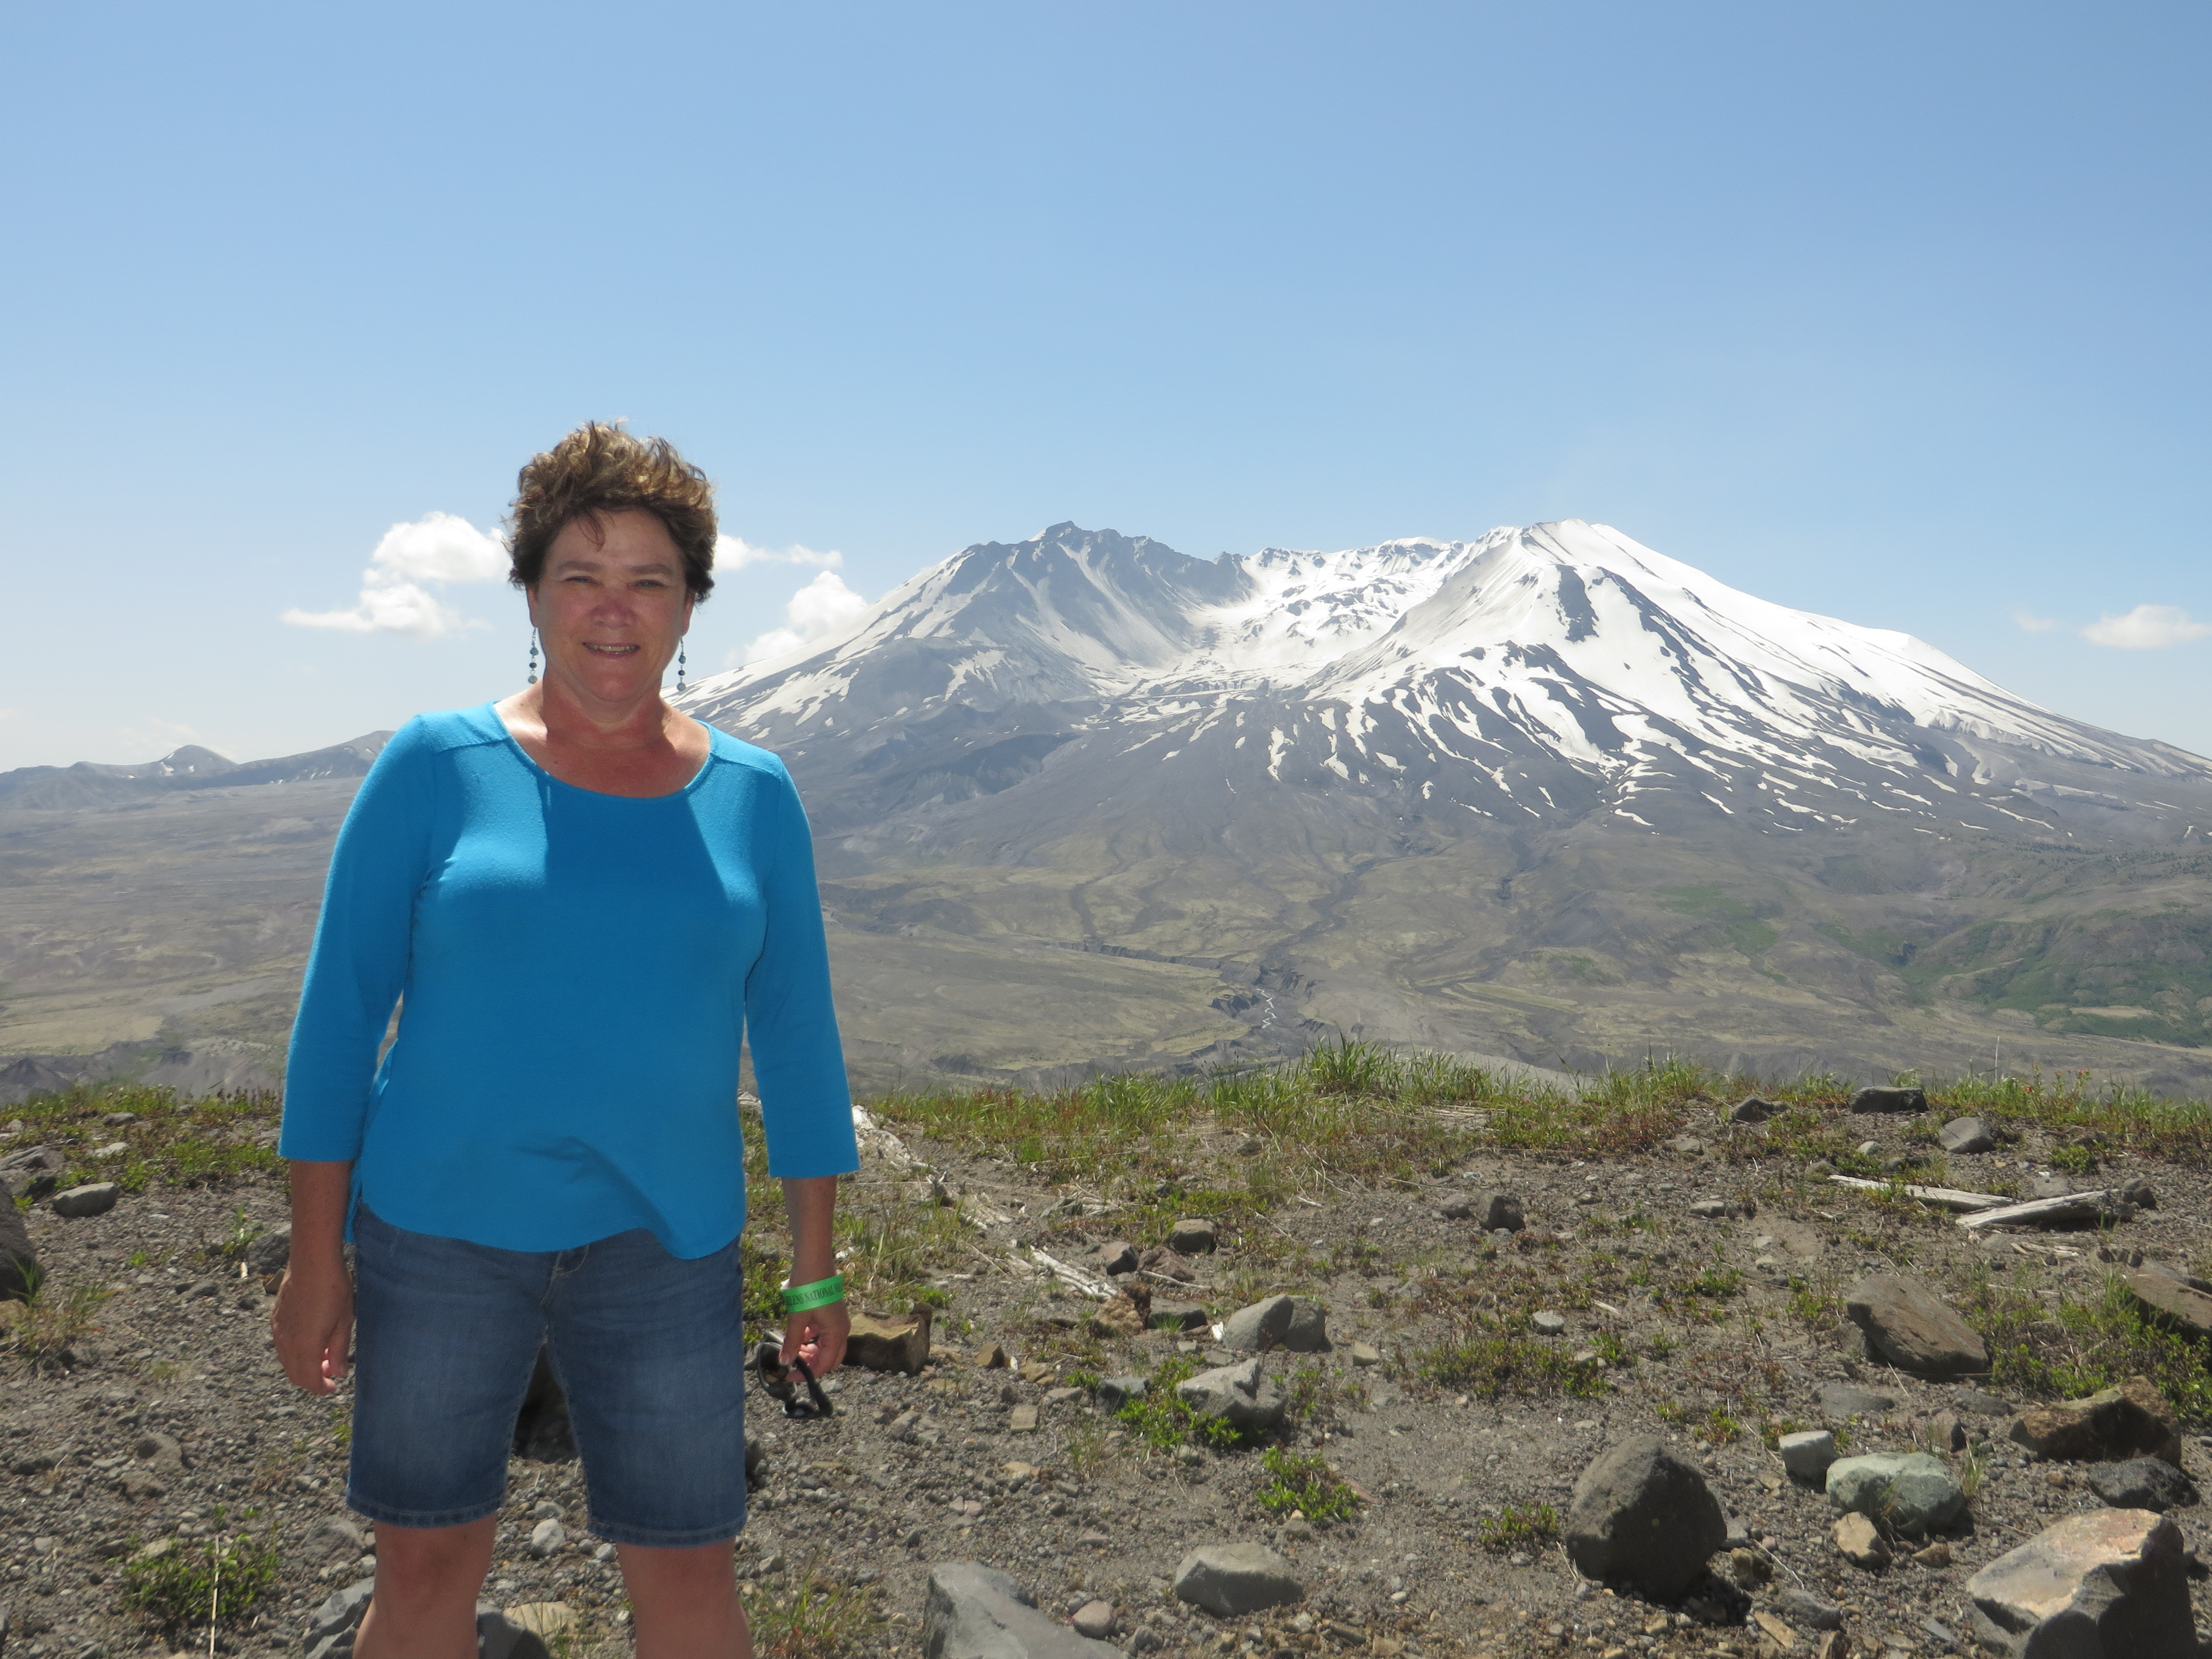 Darcy Pattison at Mt. St. Helens